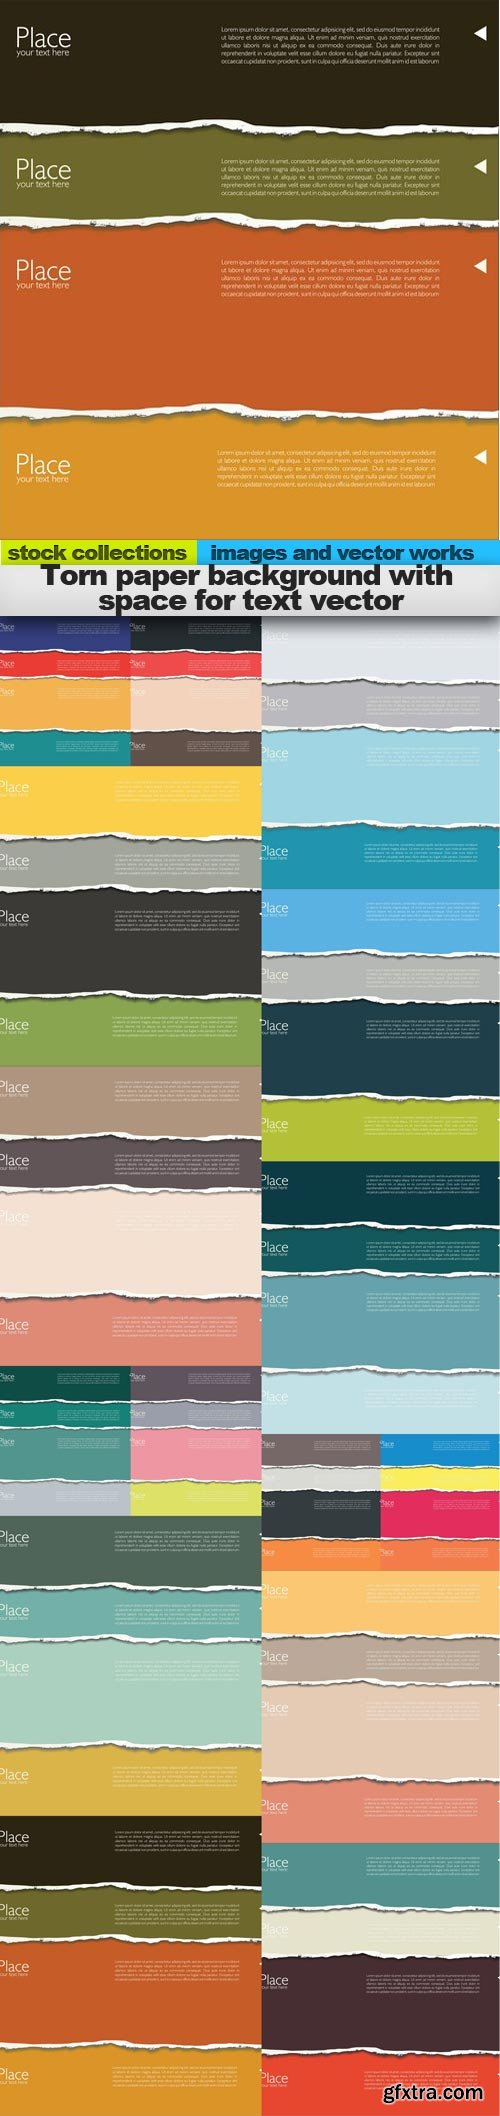 Torn paper background with space for text vector, 15 x EPS